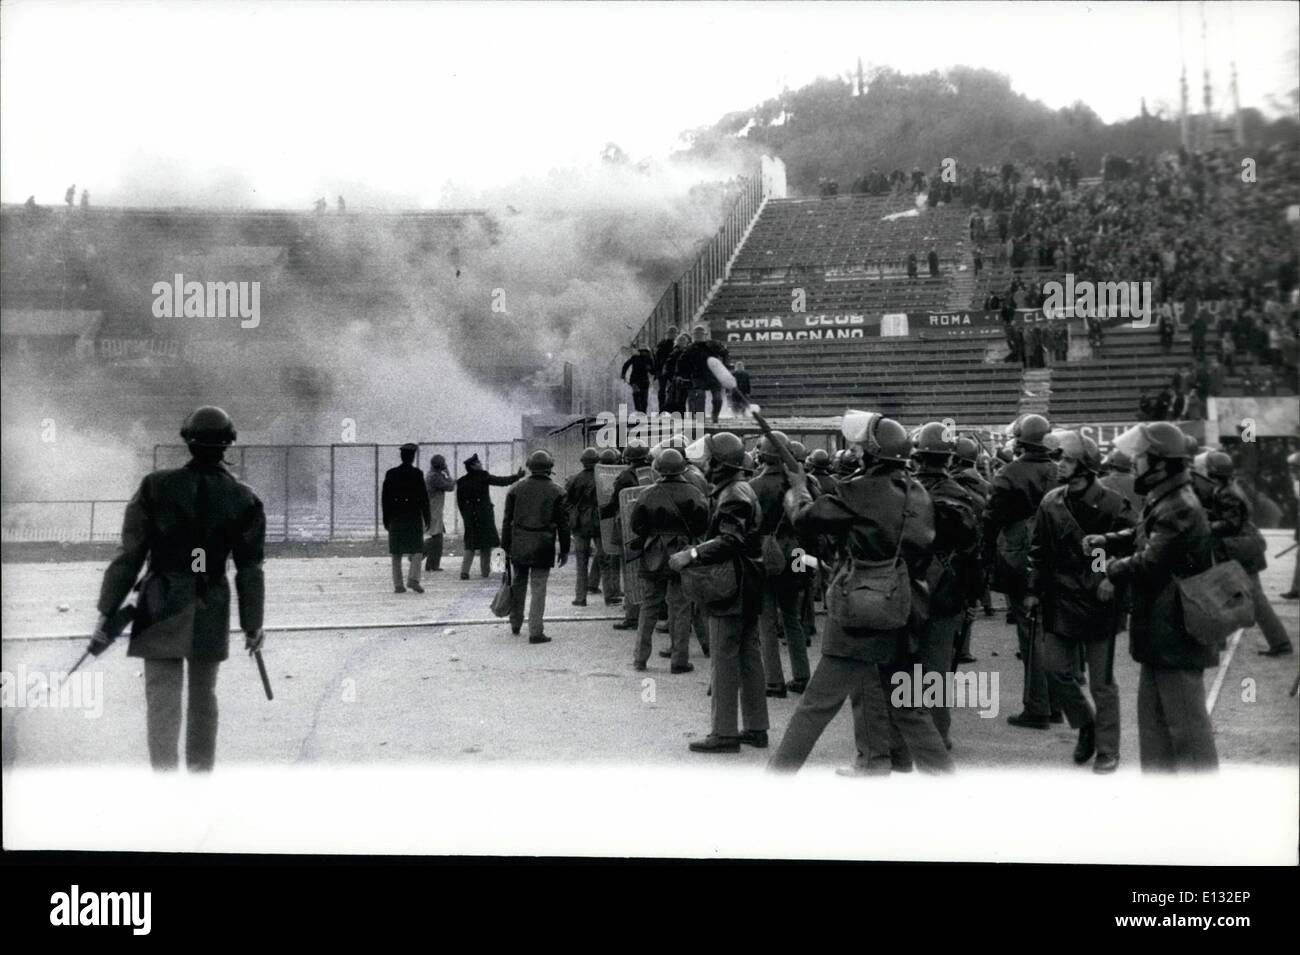 Feb. 26, 2012 - Rome, 12-1-75. Serious rioting broke out between fans and police during the Italian professional football championship in Rome between the Juventus (team of Turin) and Roma PBC caused by the decision of the referee. OPS: Police use teargas bombs to disperse the crowd. - Stock Image